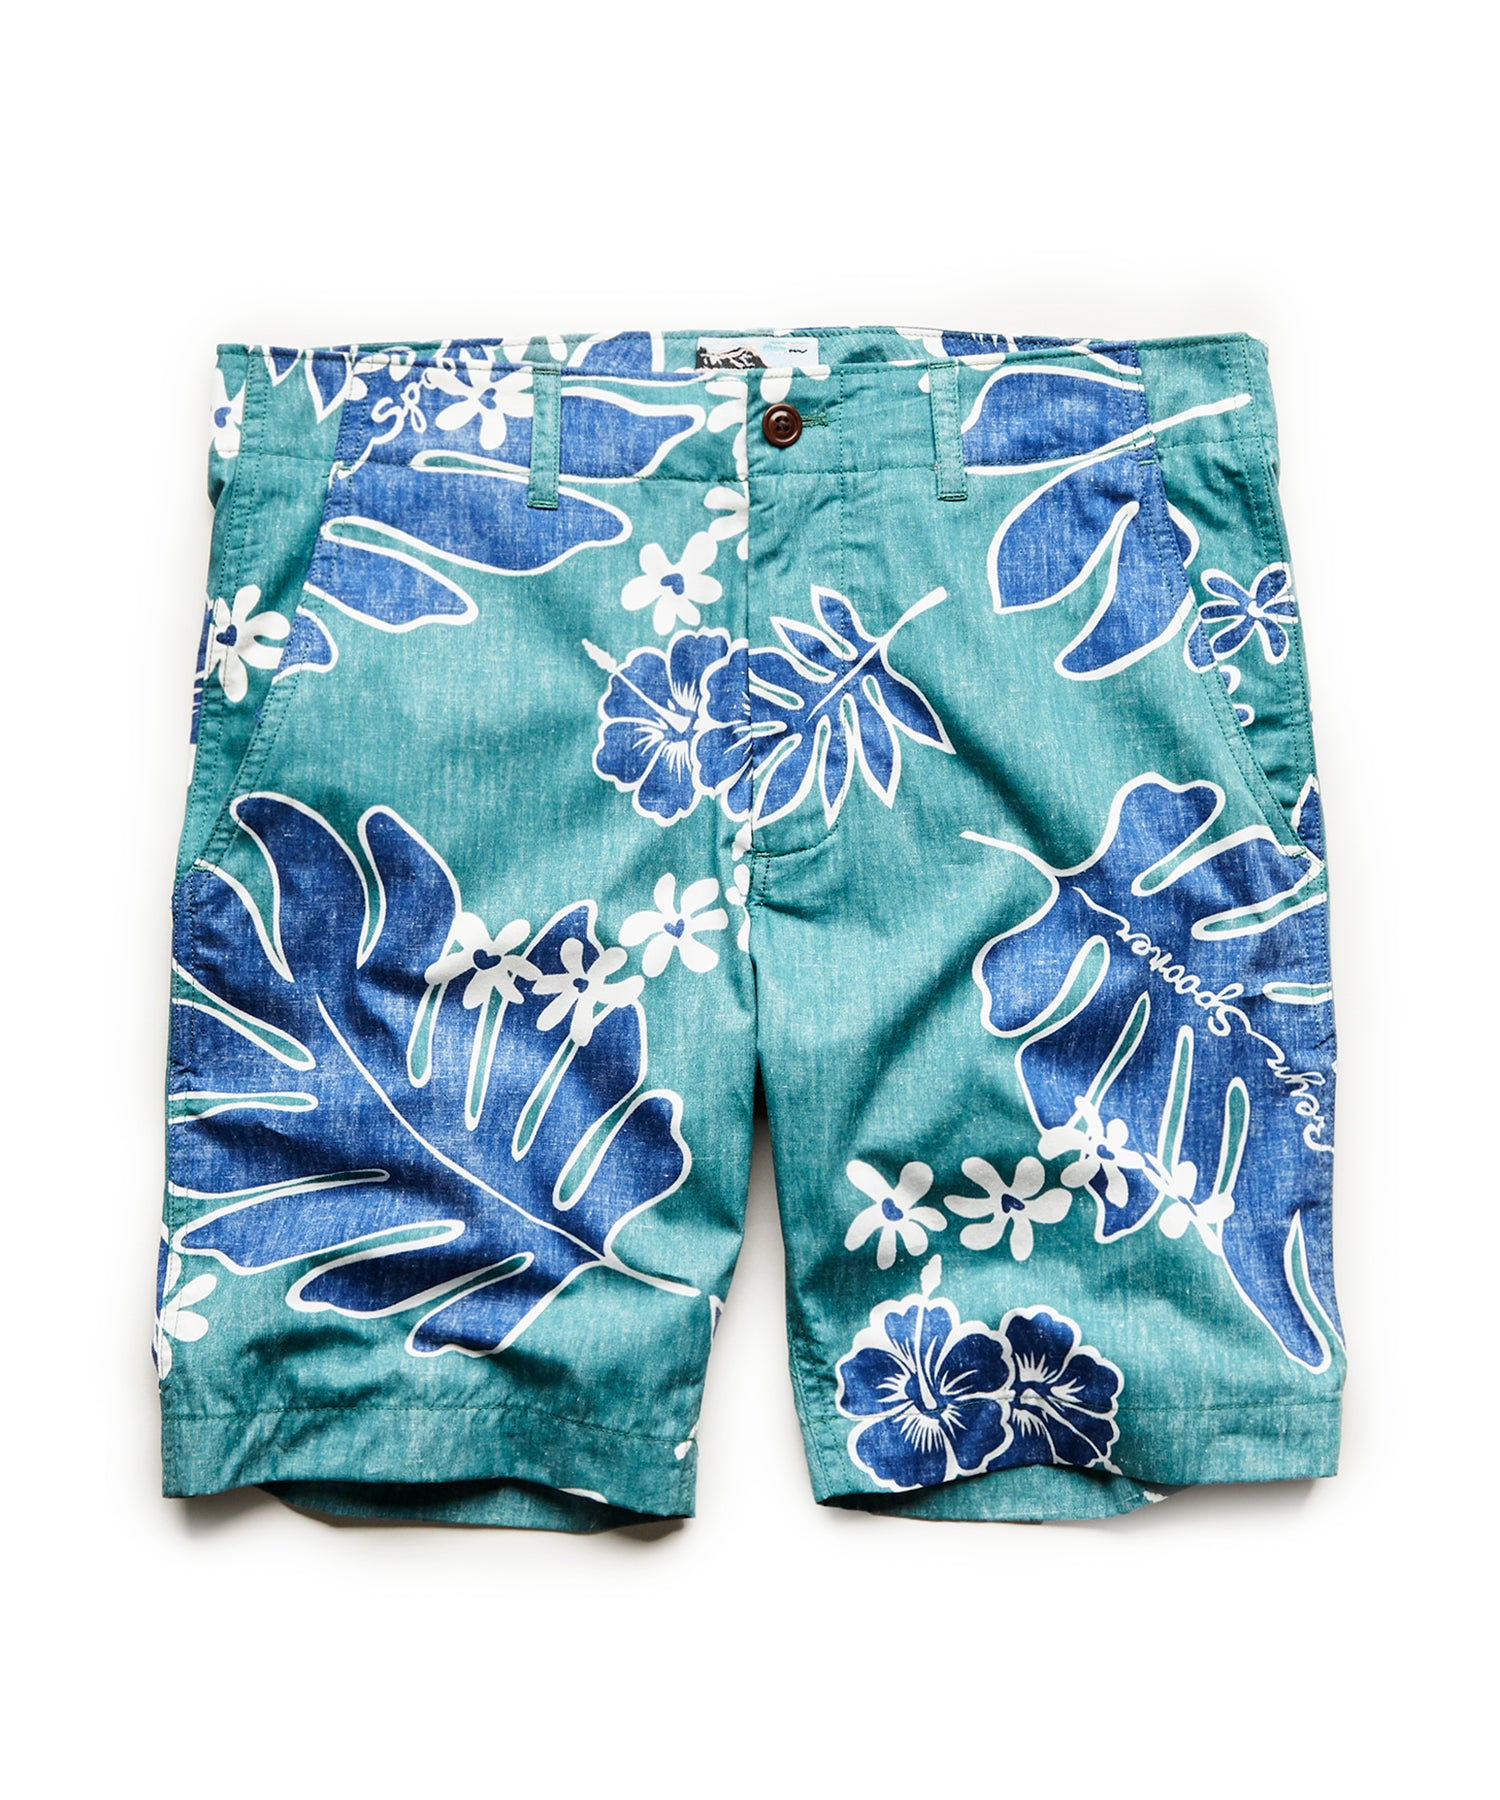 Exclusive Reyn Spooner Surplus Shorts in Green Palm